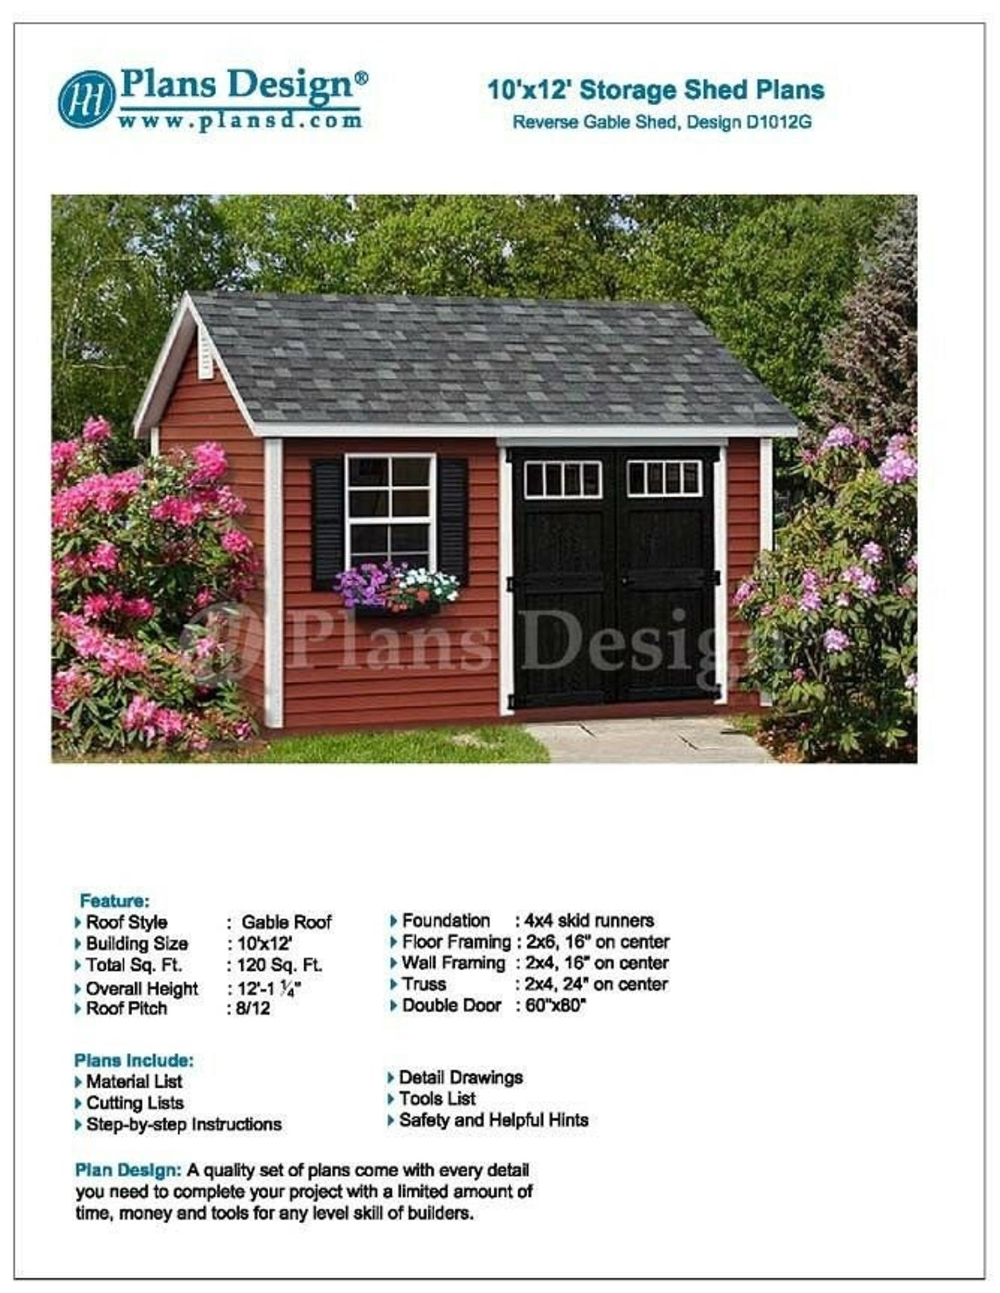 Deluxe Shed Plans 10 X 12 Reverse Gable Roof Style Etsy In 2020 Shed Plans Roof Styles Shed